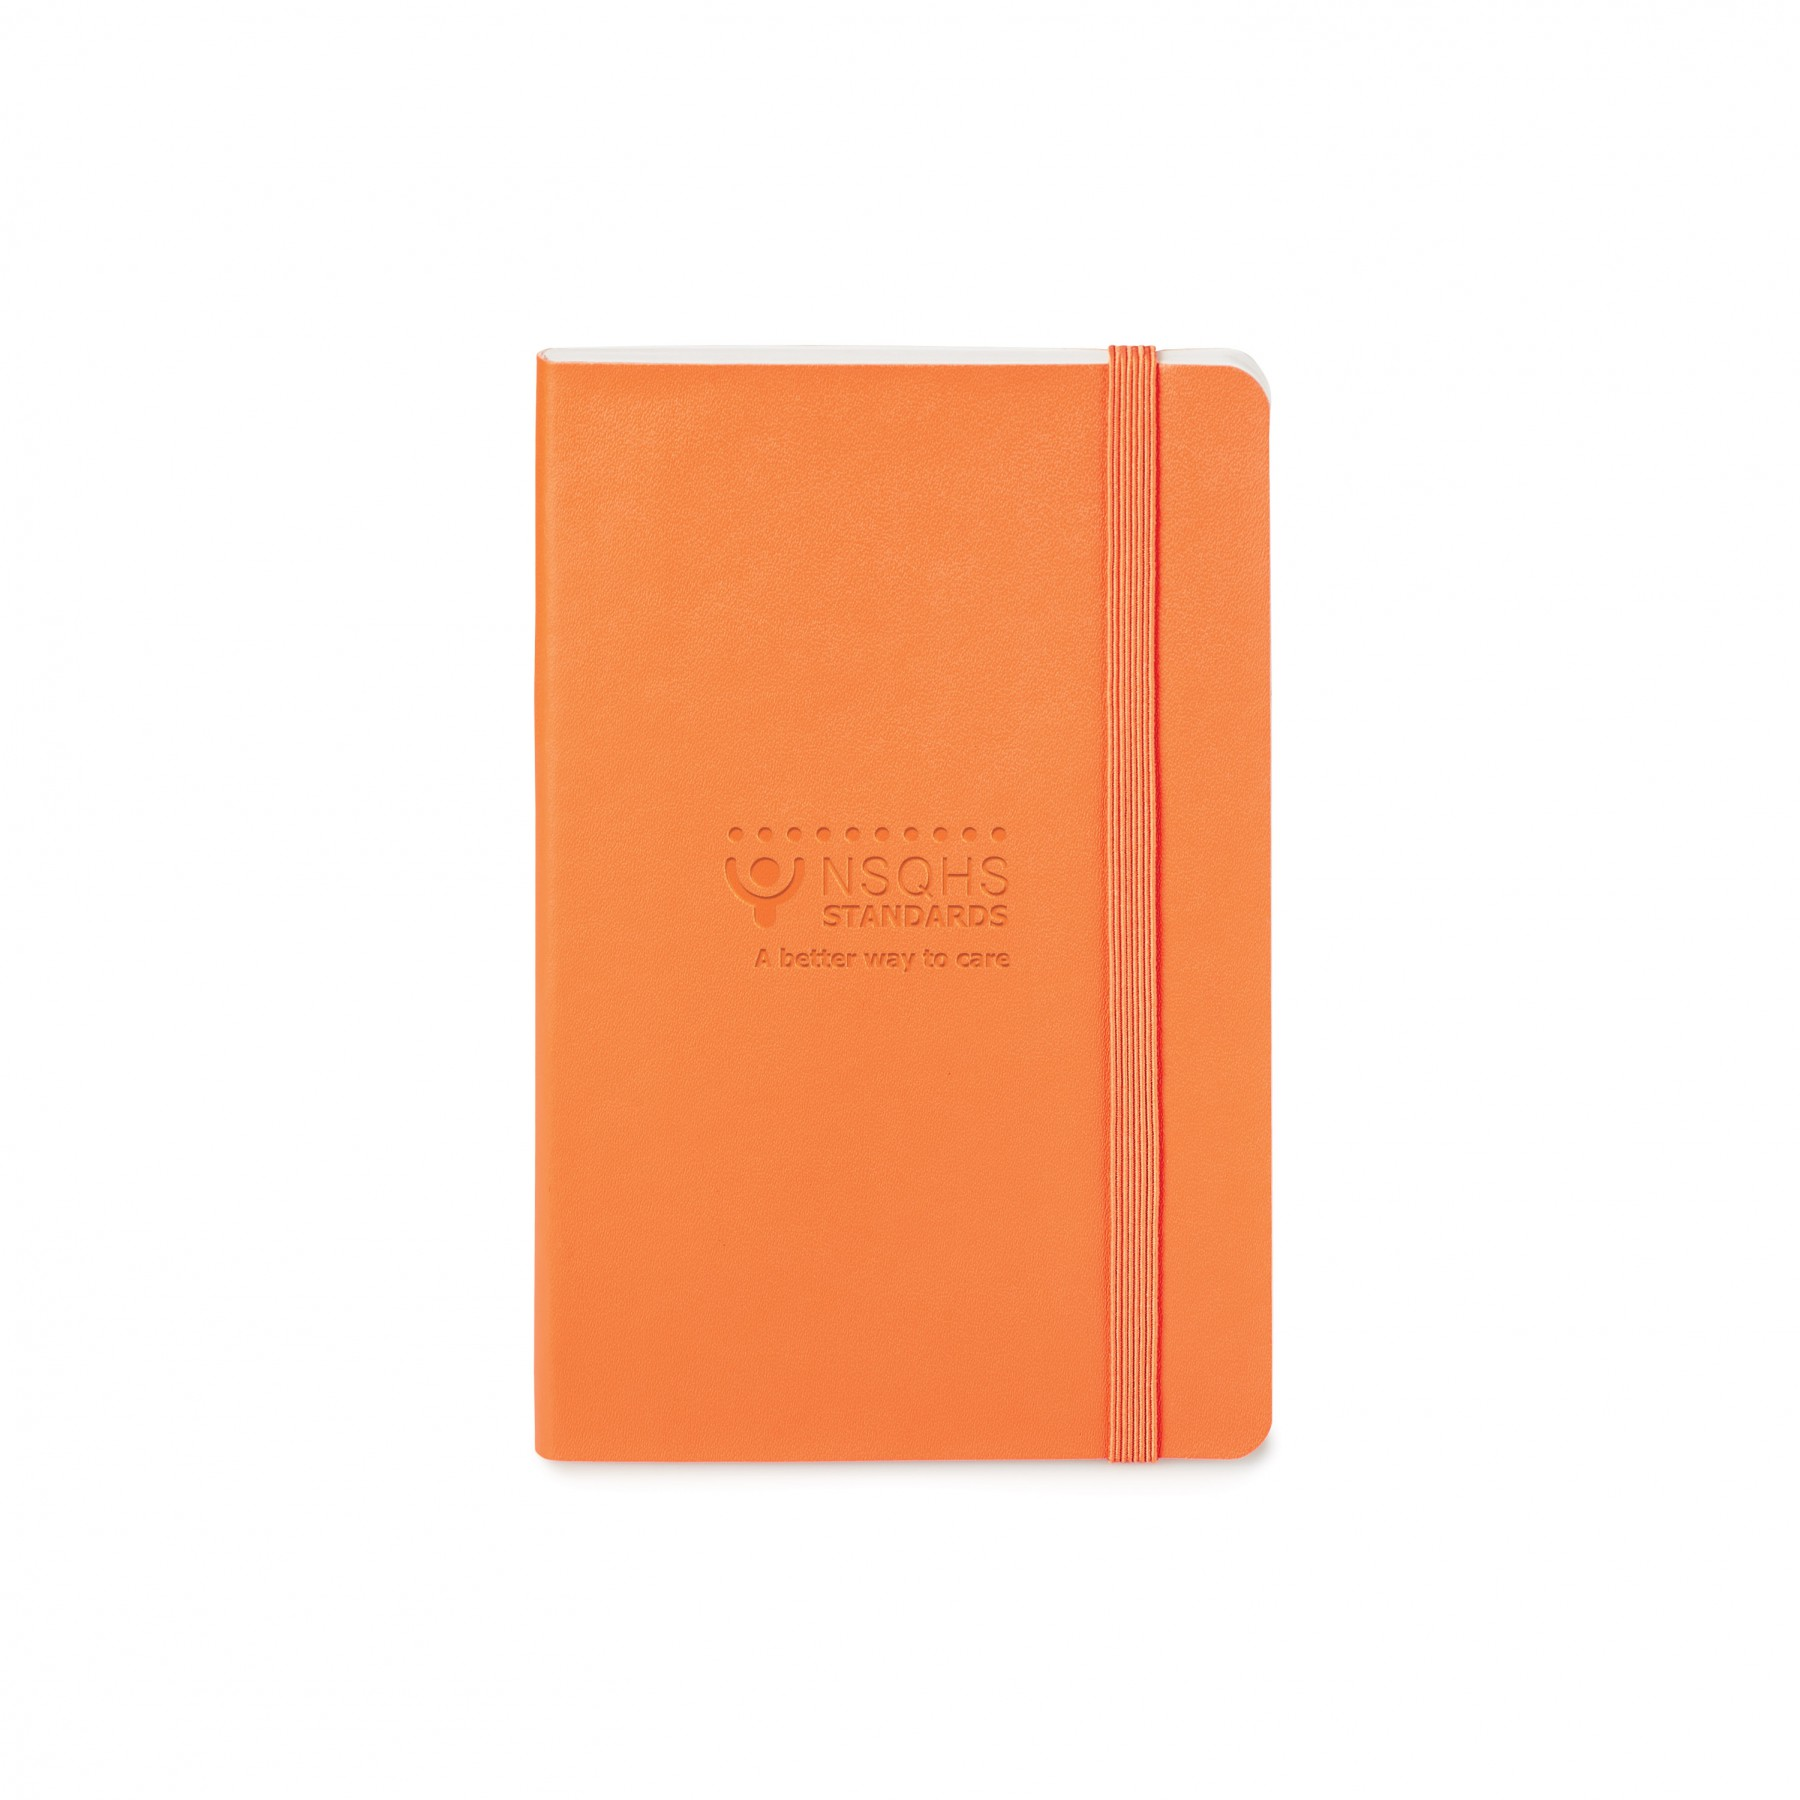 Neoskin Soft Cover Junior Journal, ST4258, Debossed Logo